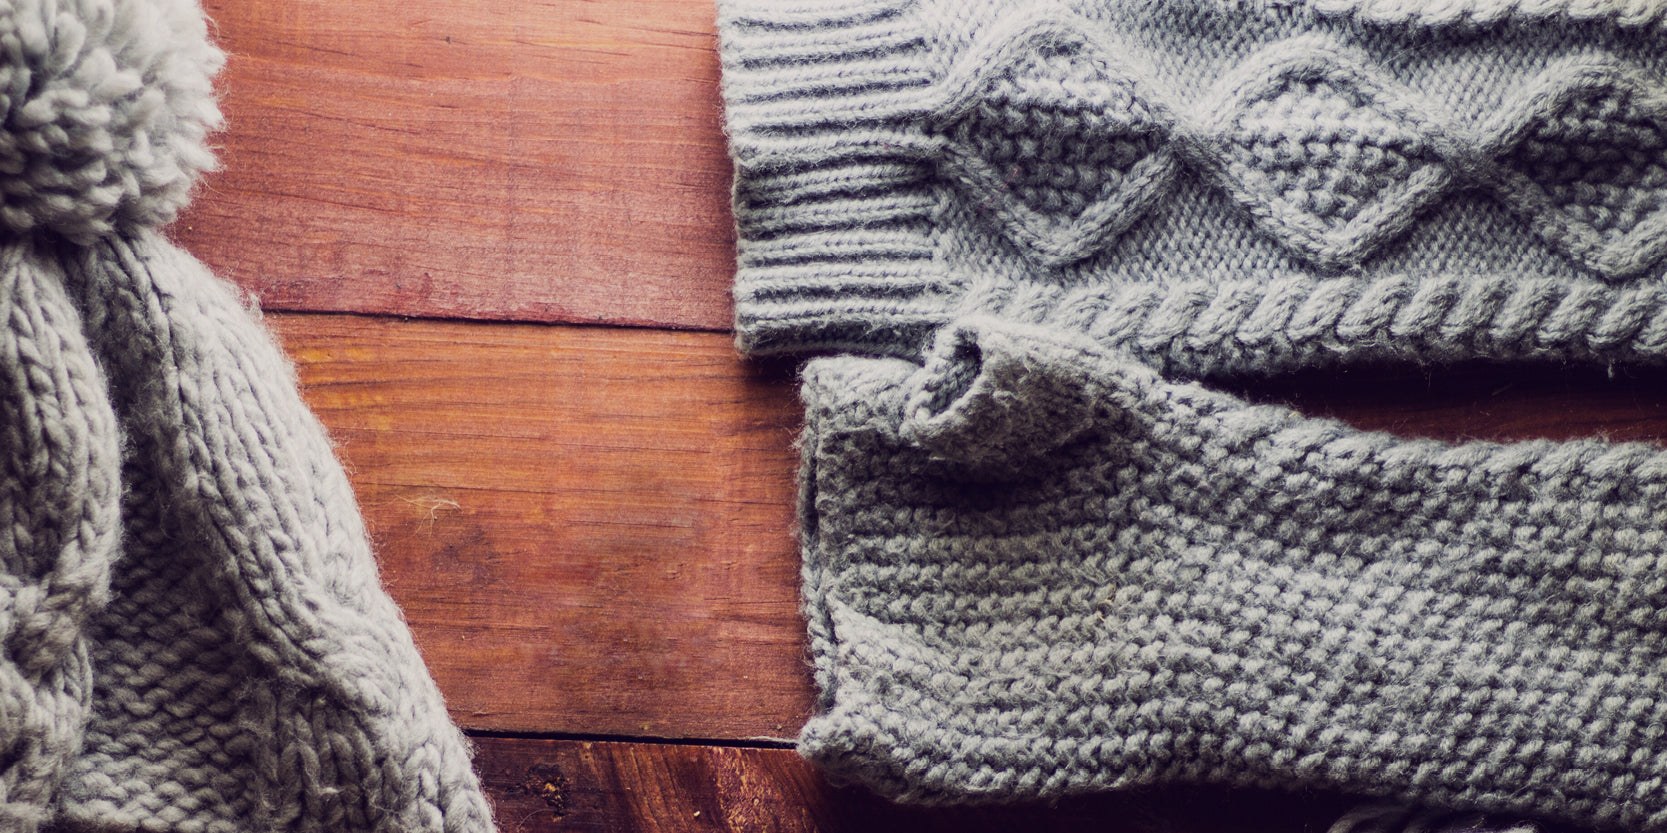 REUSE: Repurpose Old Sweaters and Jumpers - Arm bands, Mittens and Beanie